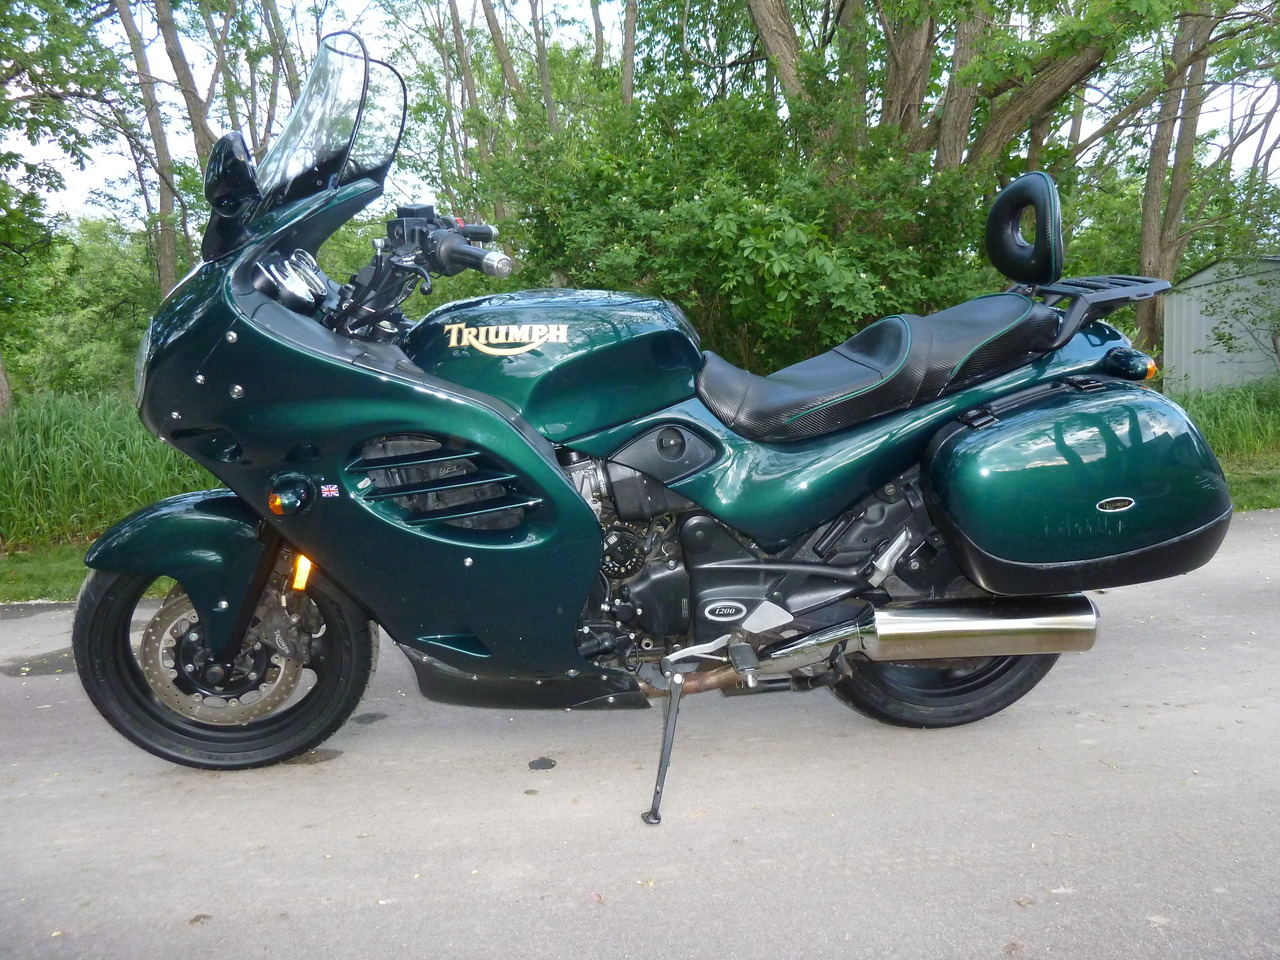 2000 Triumph Trophy 1200, motorcycle listing